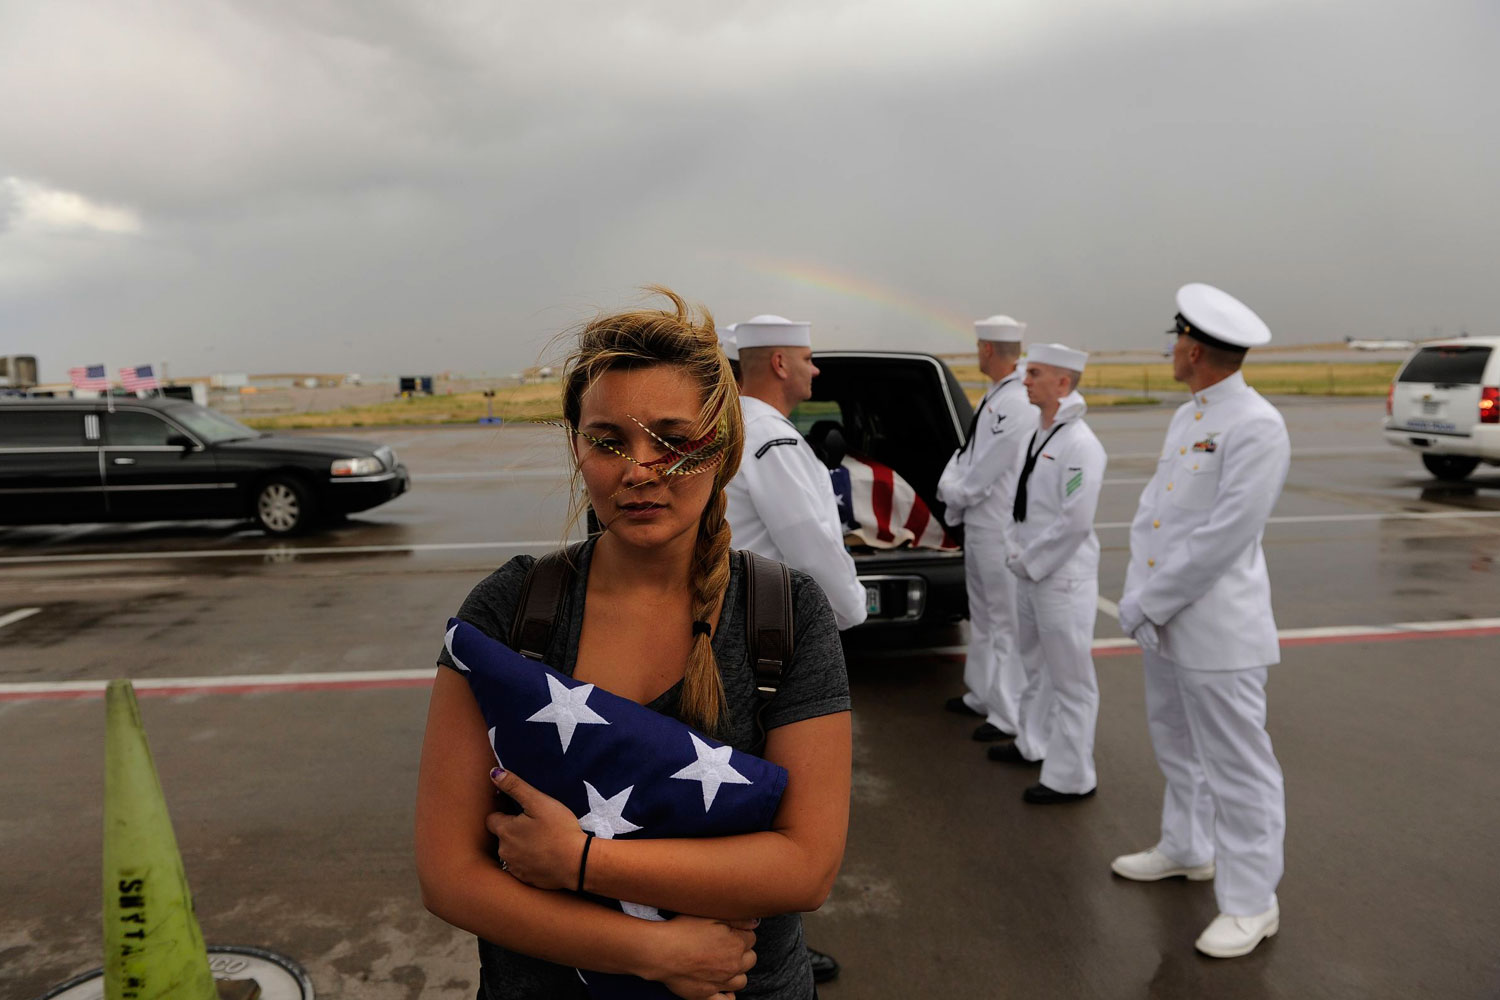 No More Shooting Massacres                     July 27, 2012. A rainbow appears behind Chantel Blunk, wife of Jonathan Blunk, as the flag-draped casket bearing her husband's remains is loaded onto a plane at Denver International Airport. Blunk, a five-year U.S. Navy veteran, was killed in the July 20 Dark Knight Rises shooting massacre in Aurora, Colorado.